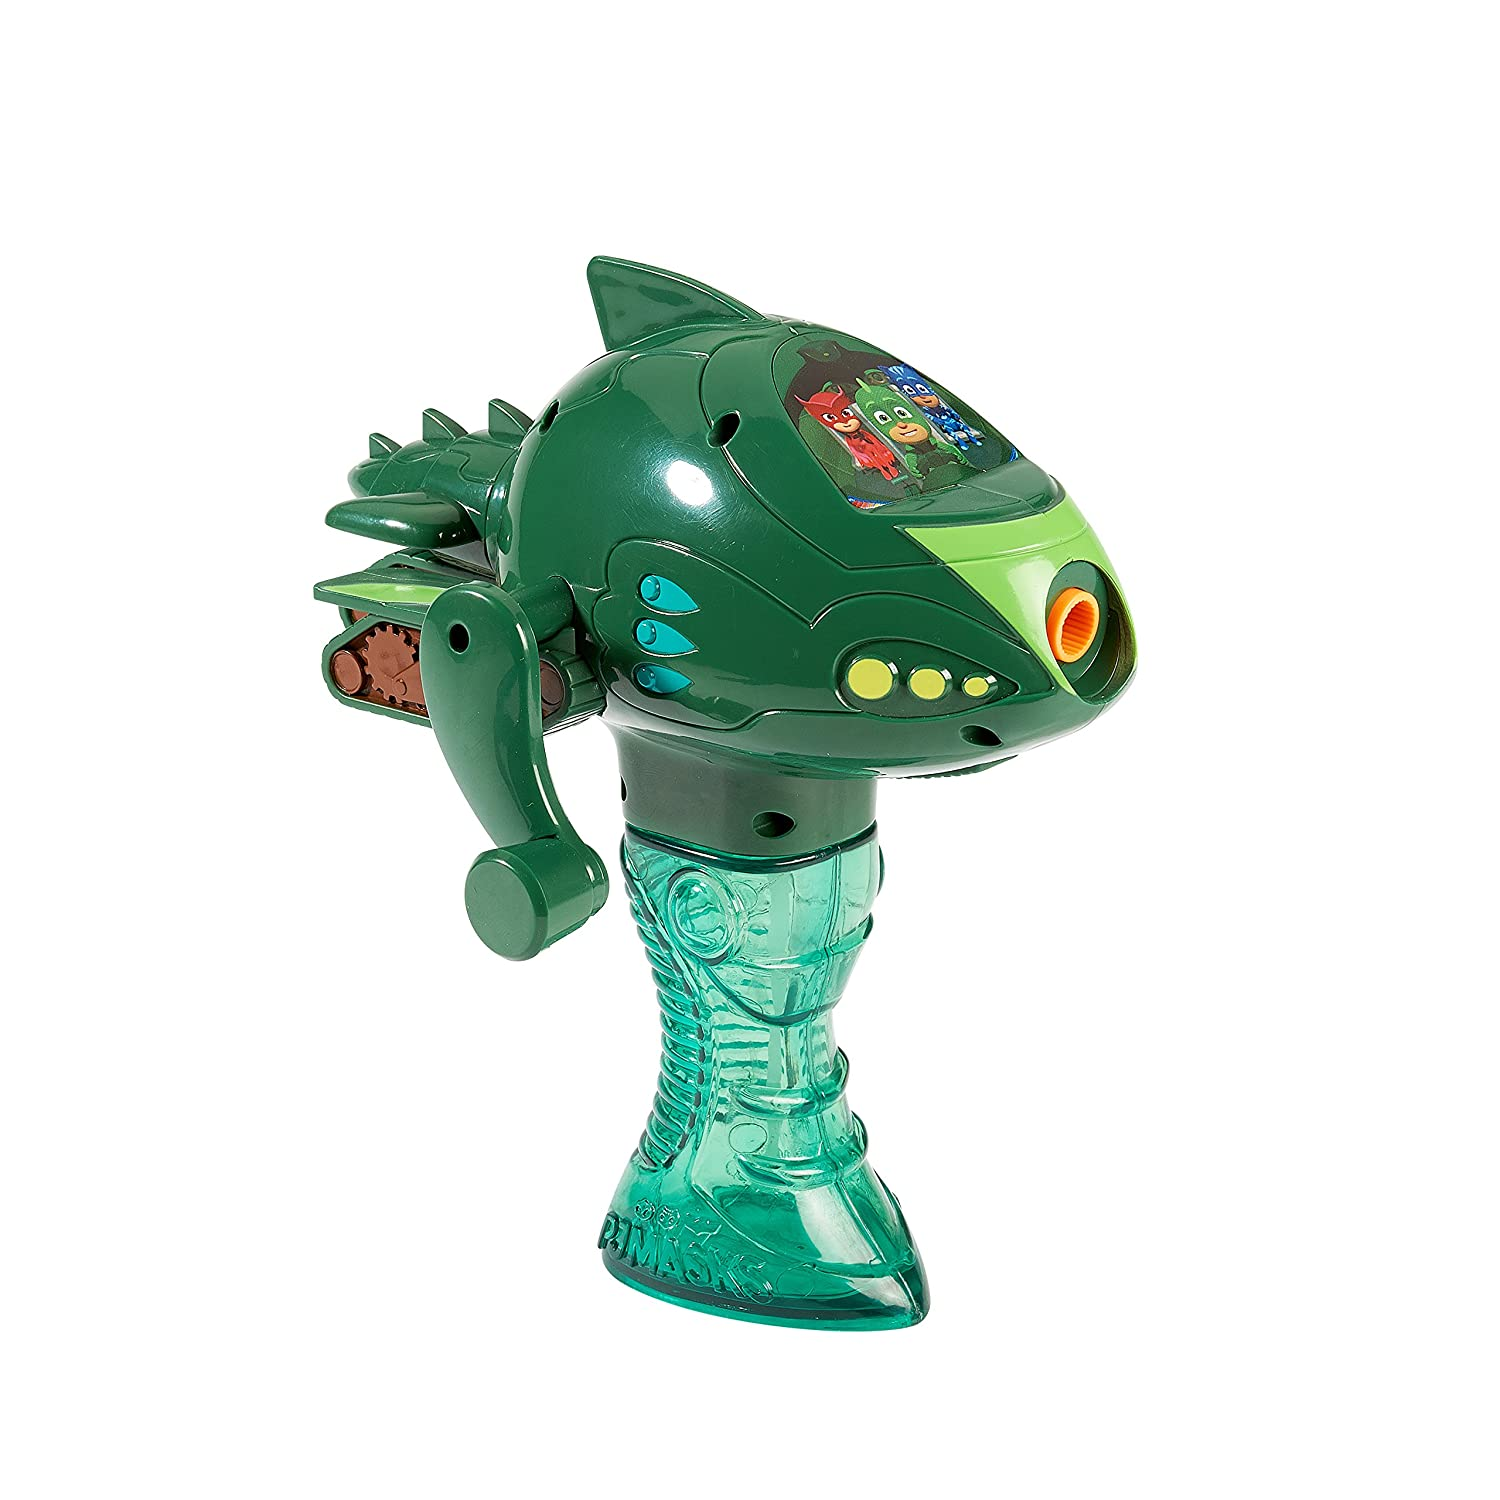 Little Kids PJ Masks Gekko Gekko Mobile Bubble Blower Vehicle with 4oz of Bubble Solution Toy Green